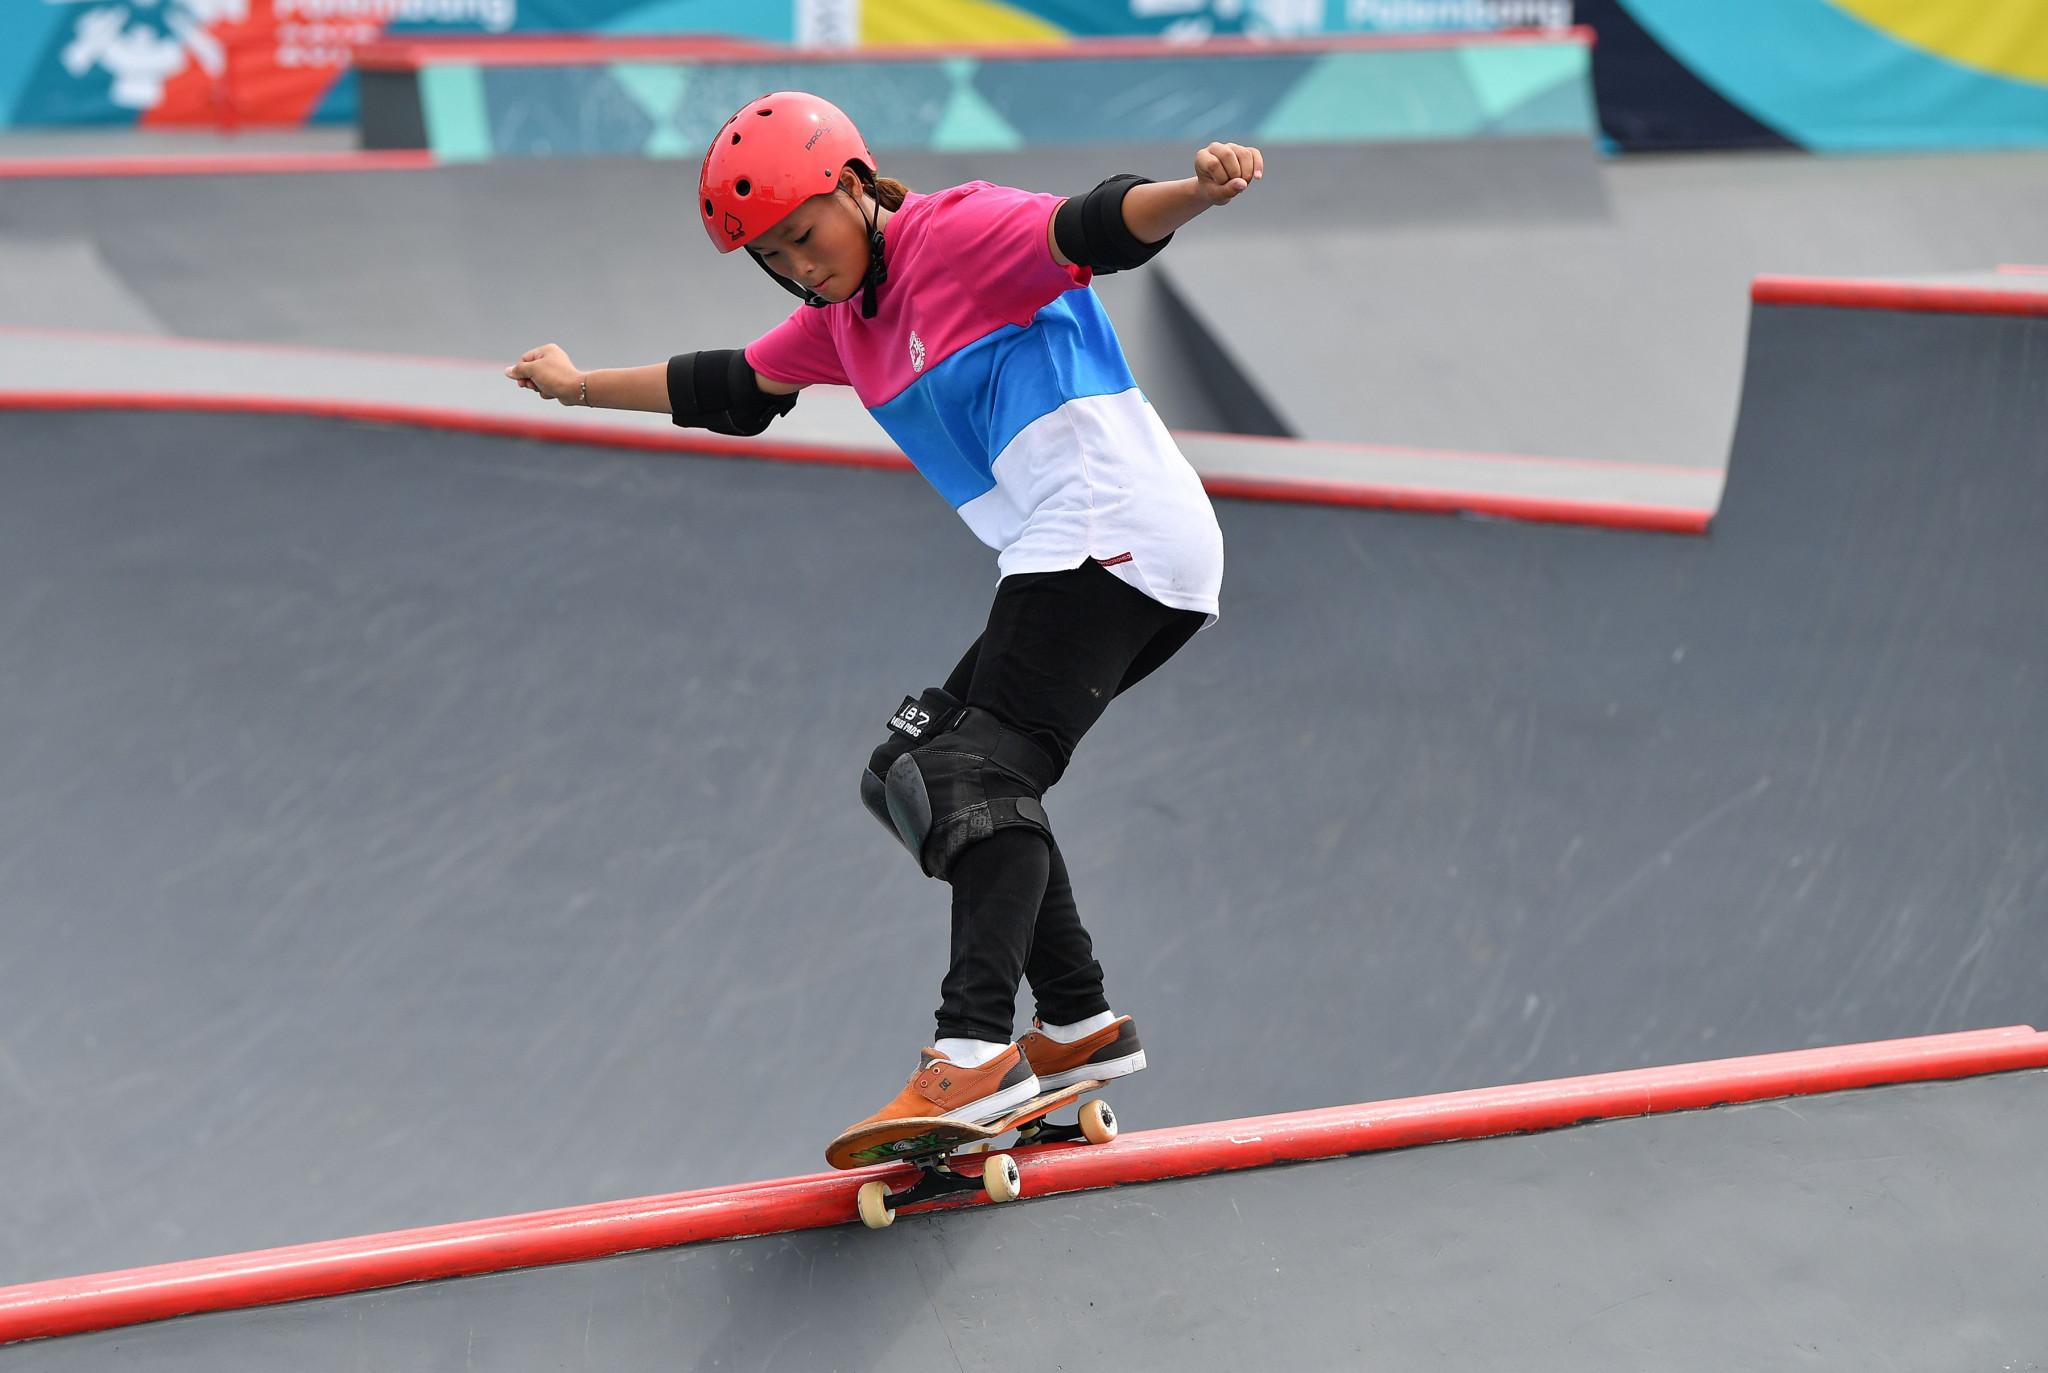 Youngsters make their mark in skateboarding as China pass 100-gold-medals mark on day 11 of 2018 Asian Games